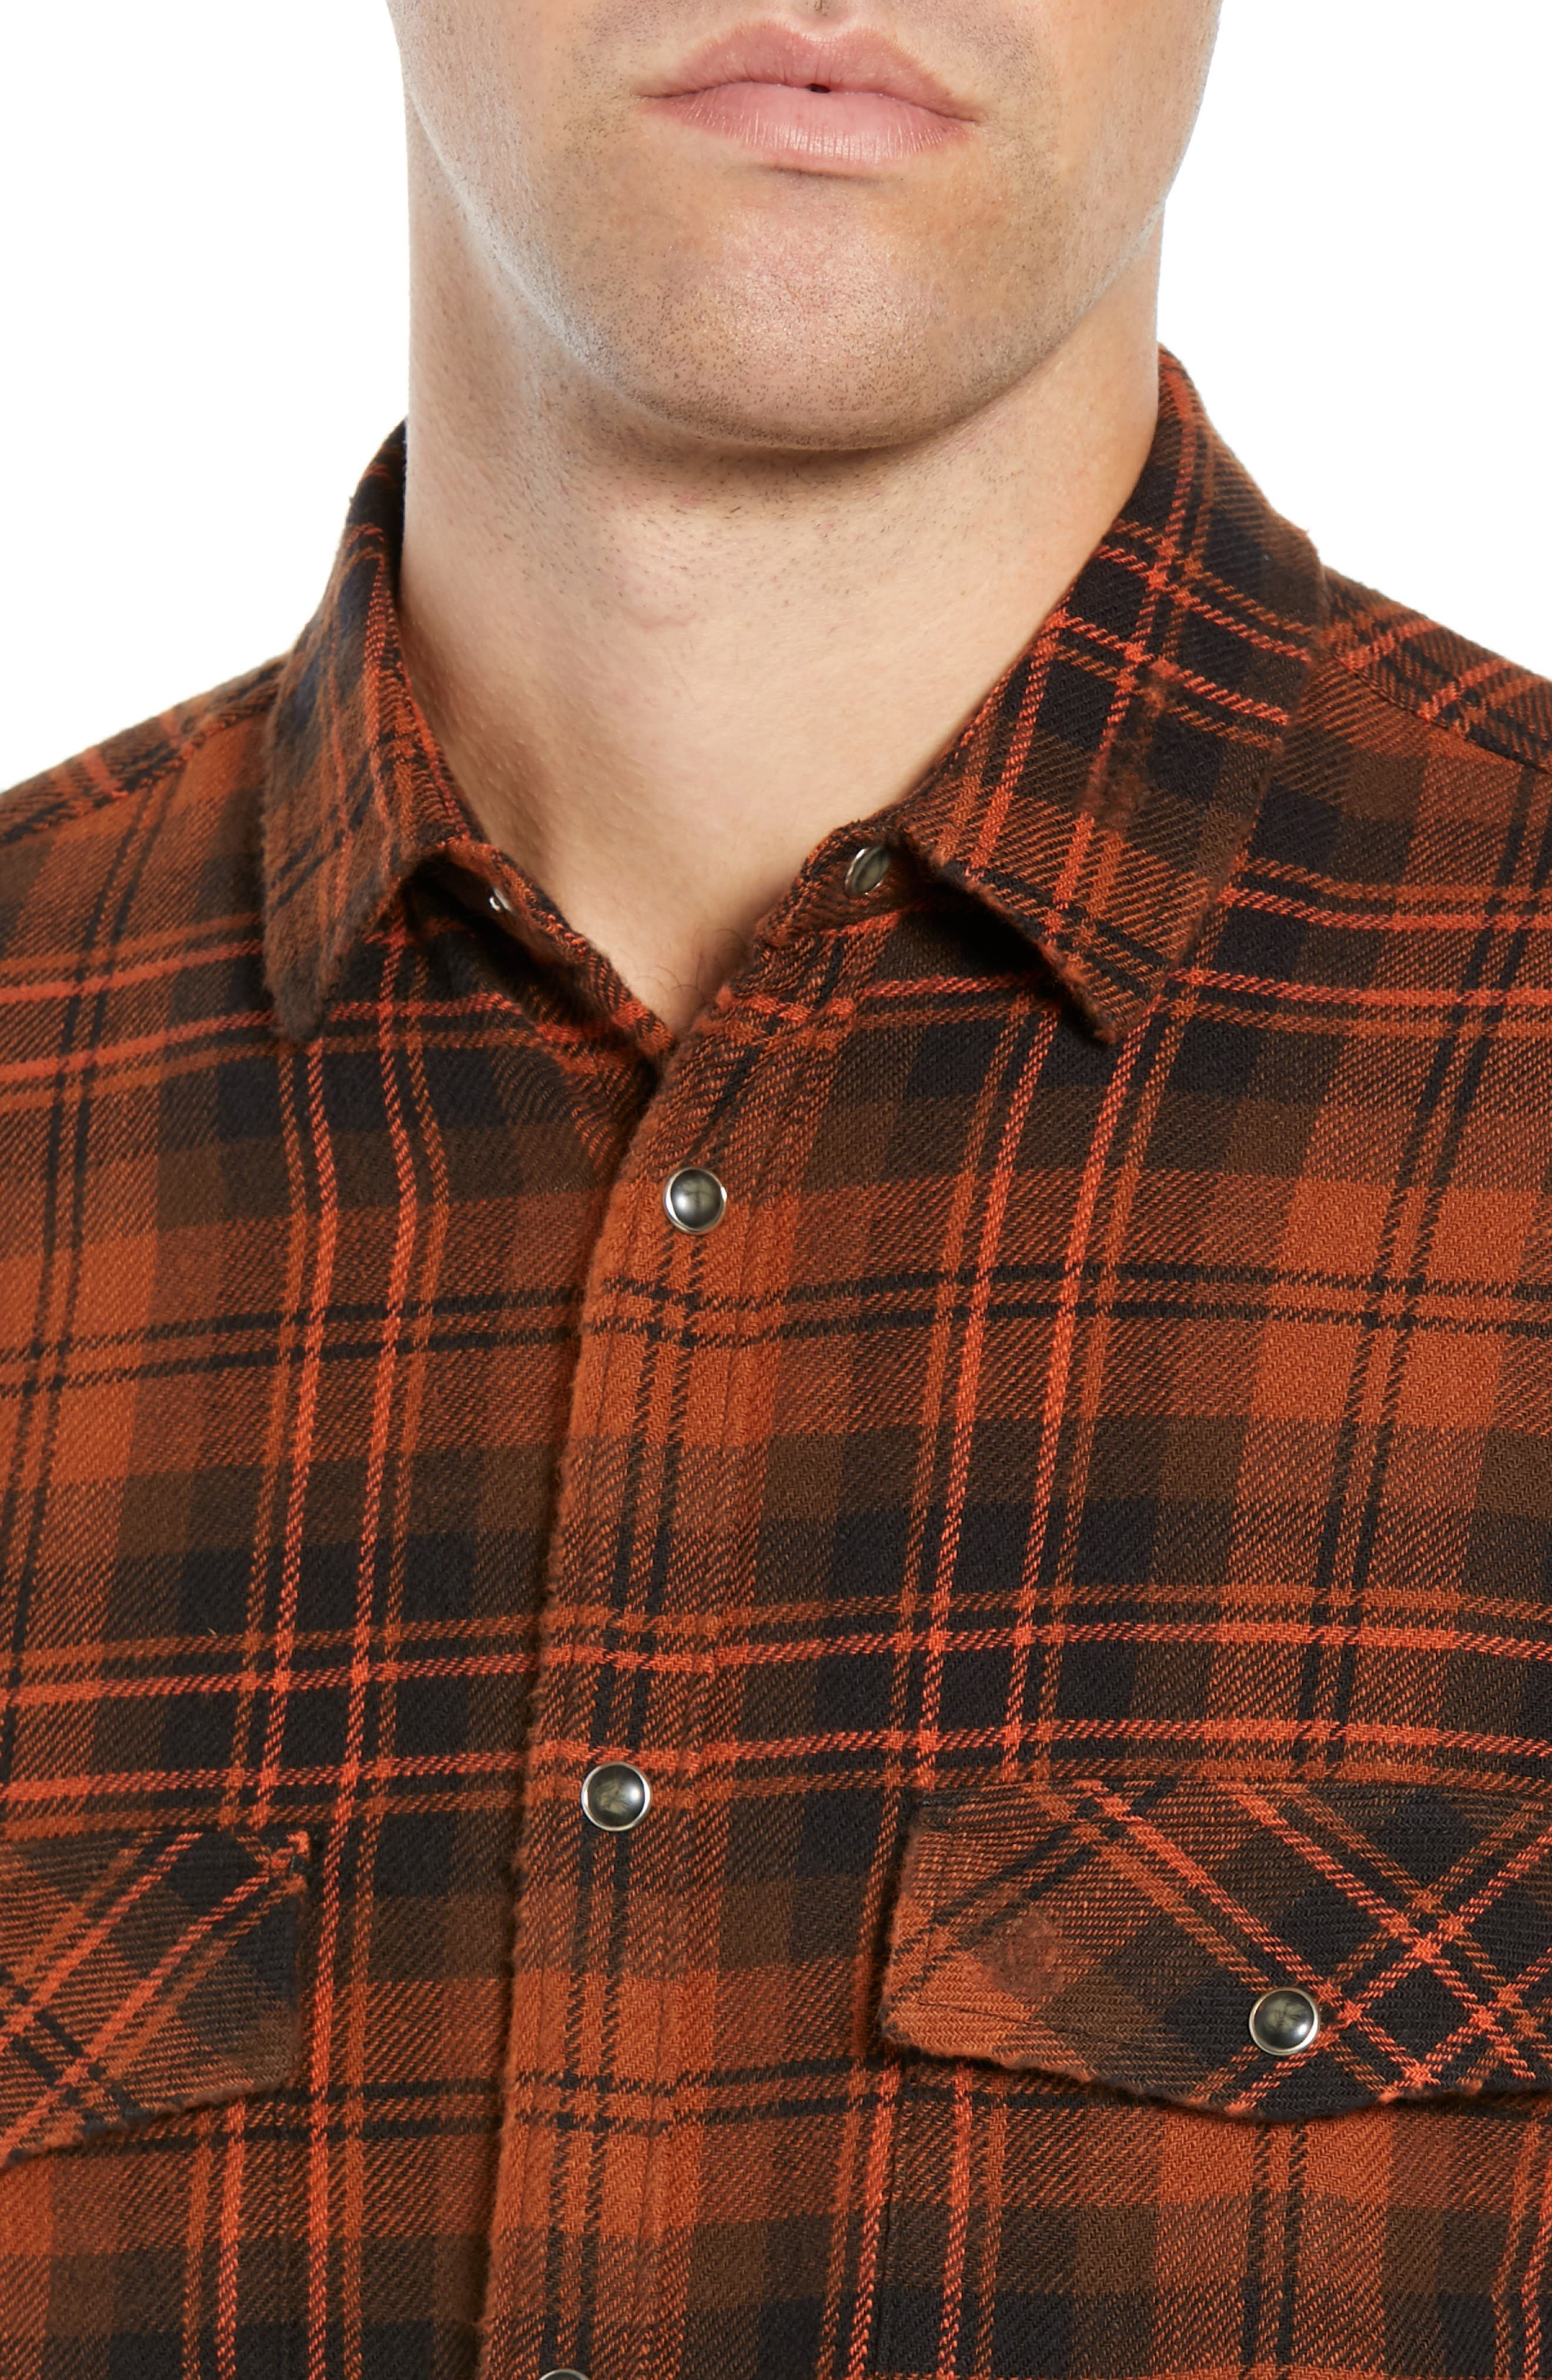 Destroyed Check Flannel Shirt,                             Alternate thumbnail 2, color,                             001